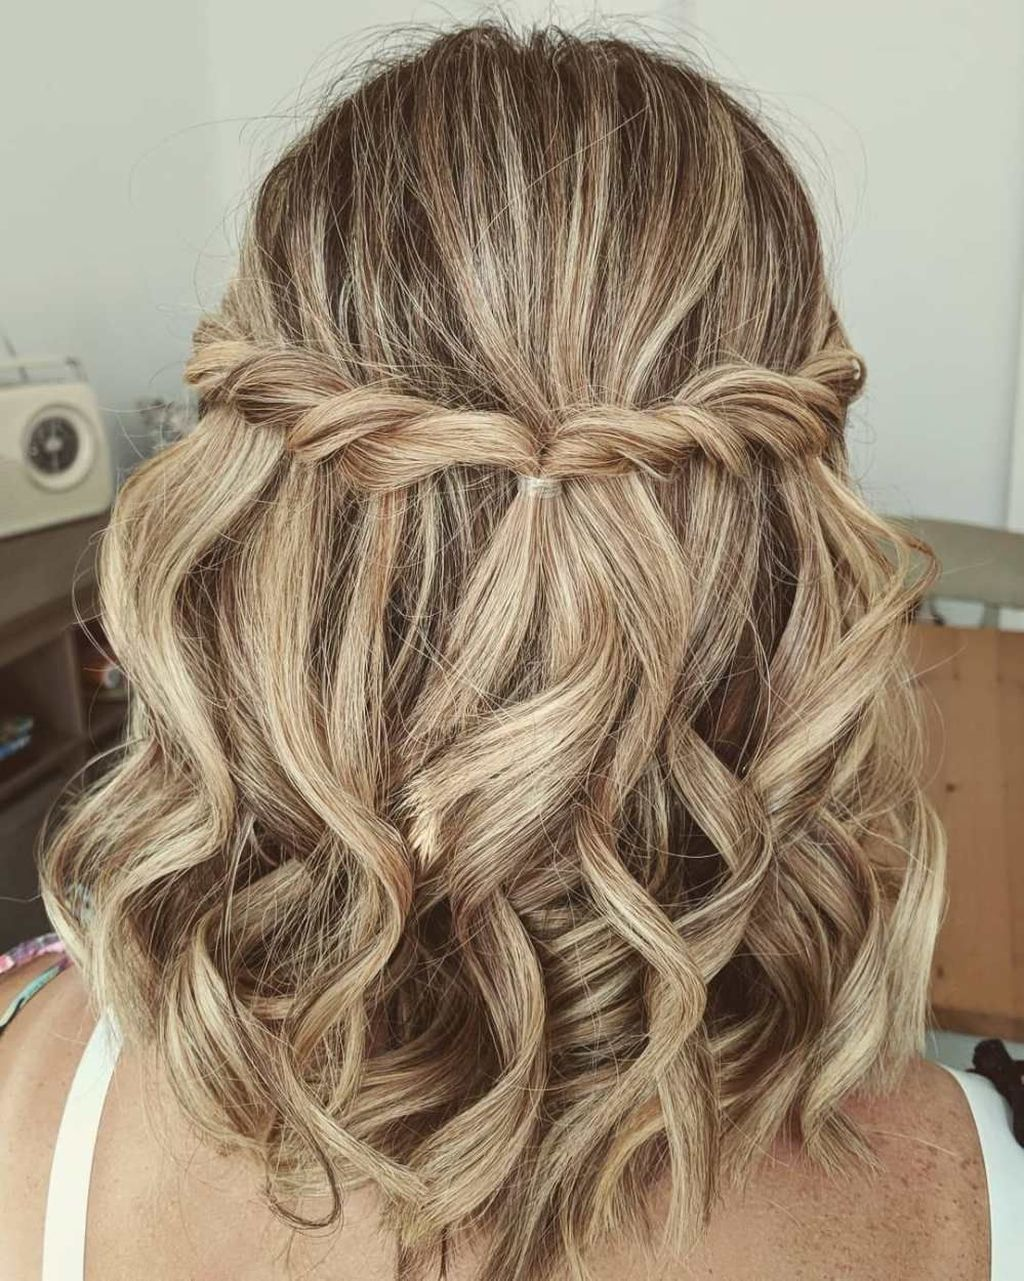 50 Newest Short Formal Hairstyles Ideas For Women Updos For Medium Length Hair Medium Length Hair Styles Hair Styles